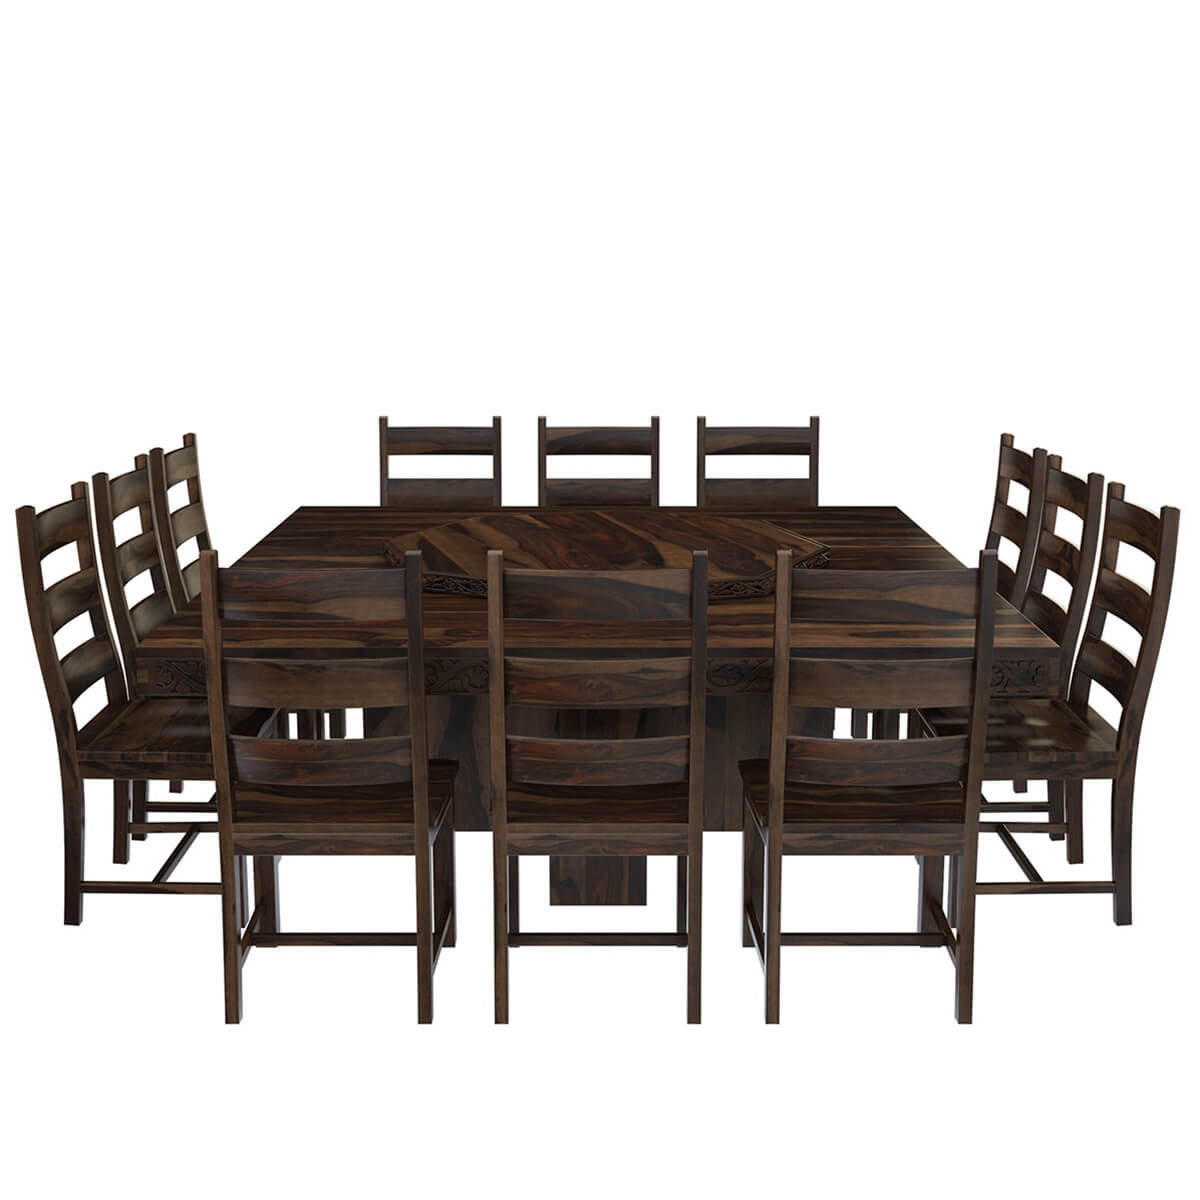 Modern Pioneer Solid Wood Lazy Susan Pedestal Dining Table